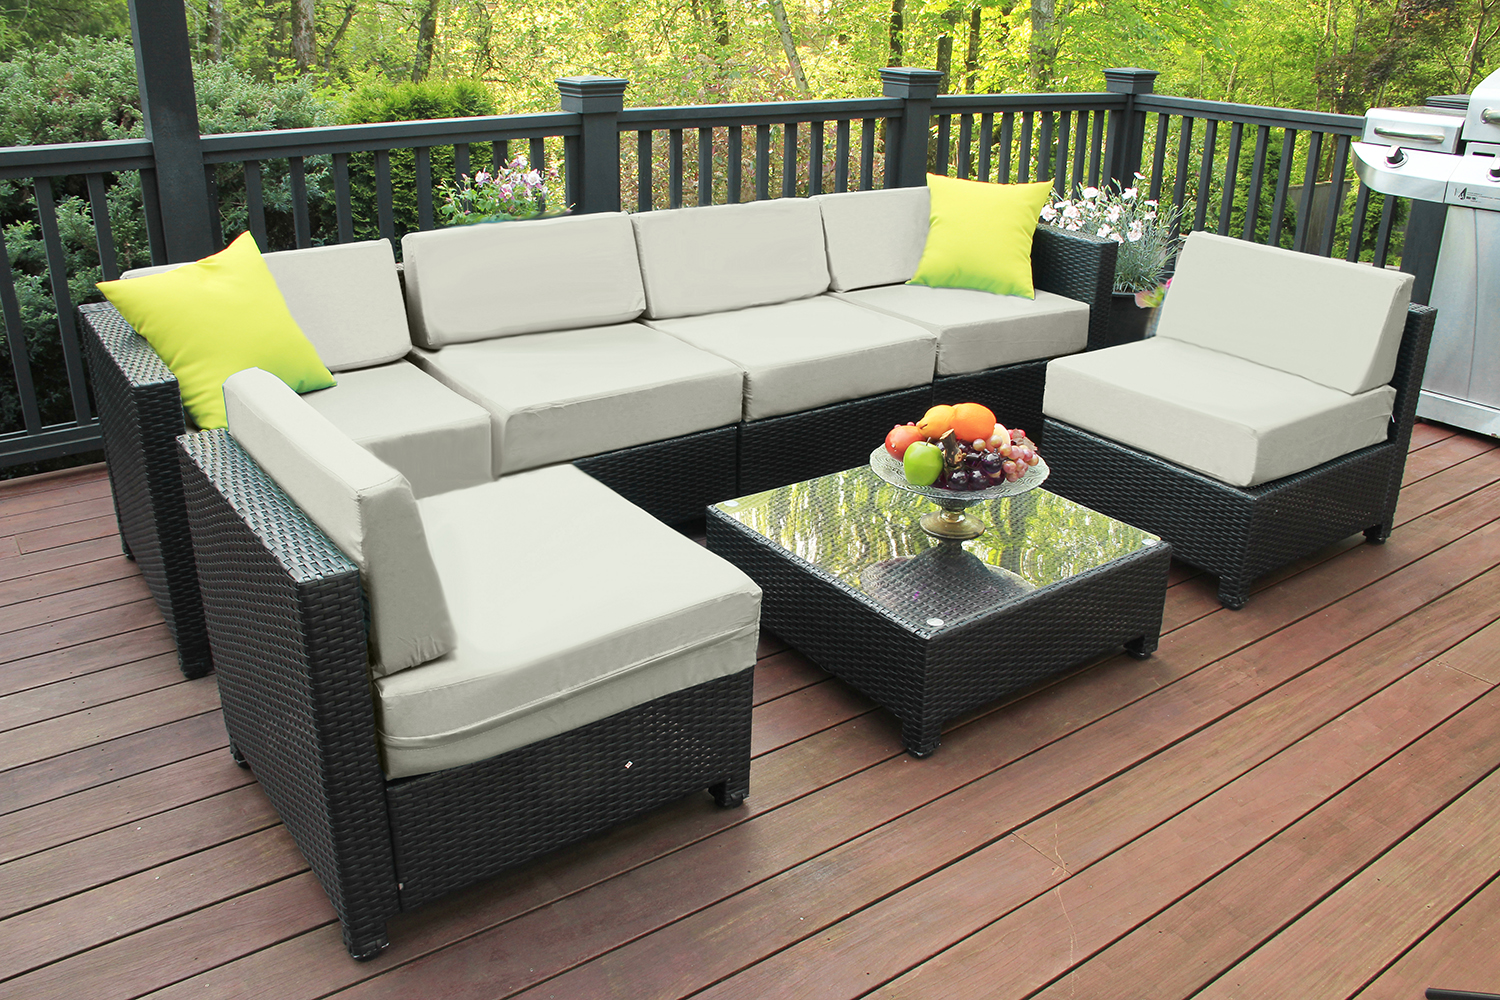 mcombo aluminum outdoor patio furniture sectional set black wicker sofa all weather resin rattan conversation chair with cushions 6080 1007 cw